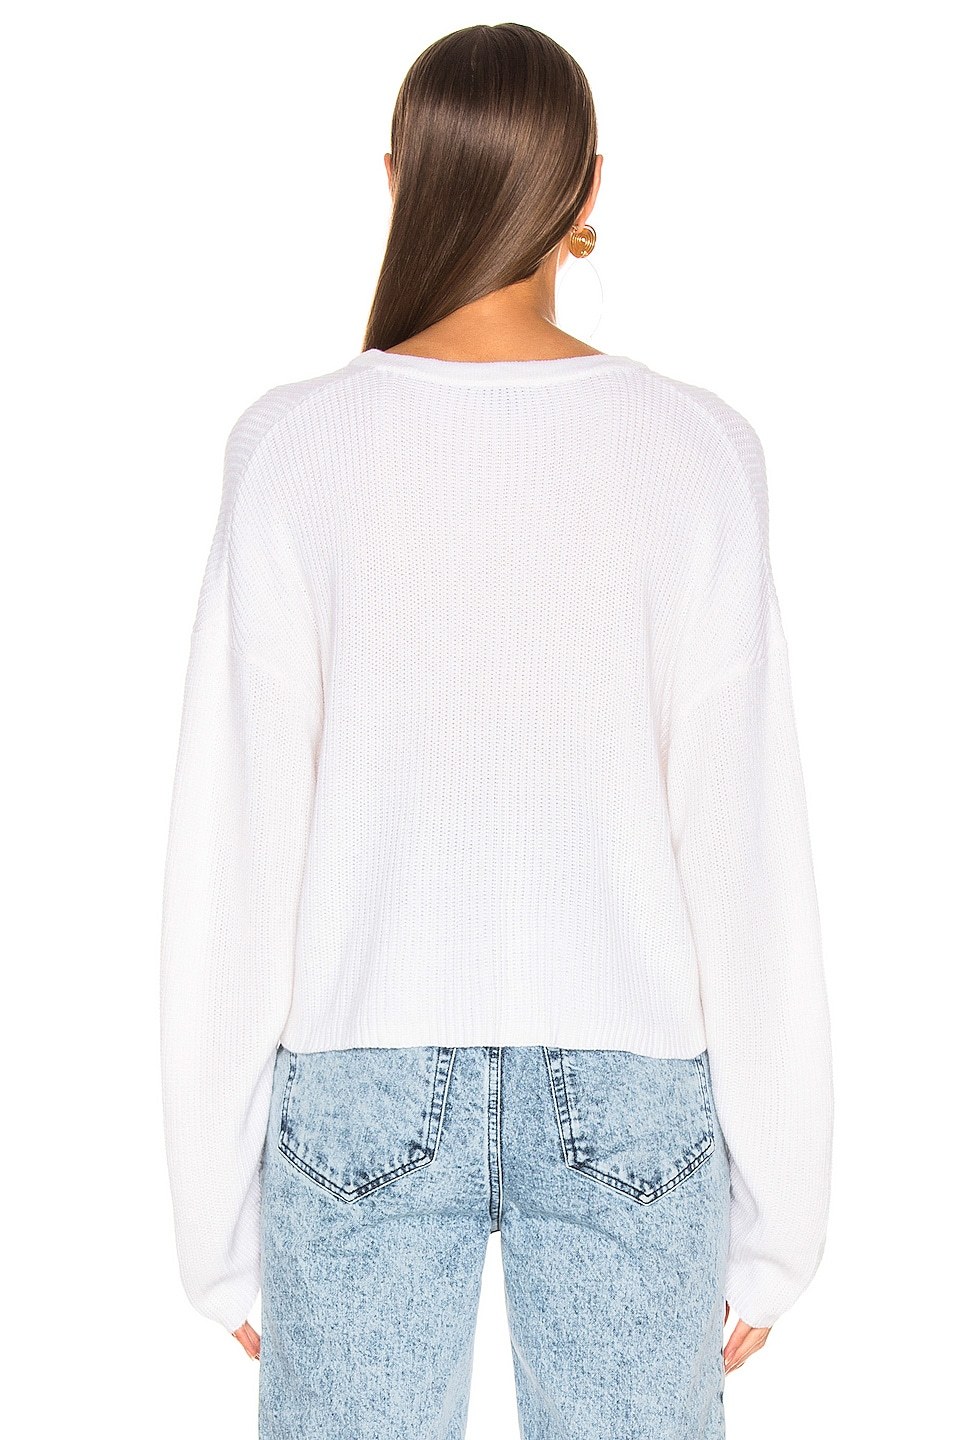 Image 3 of The Range Element Henley Sweater in White